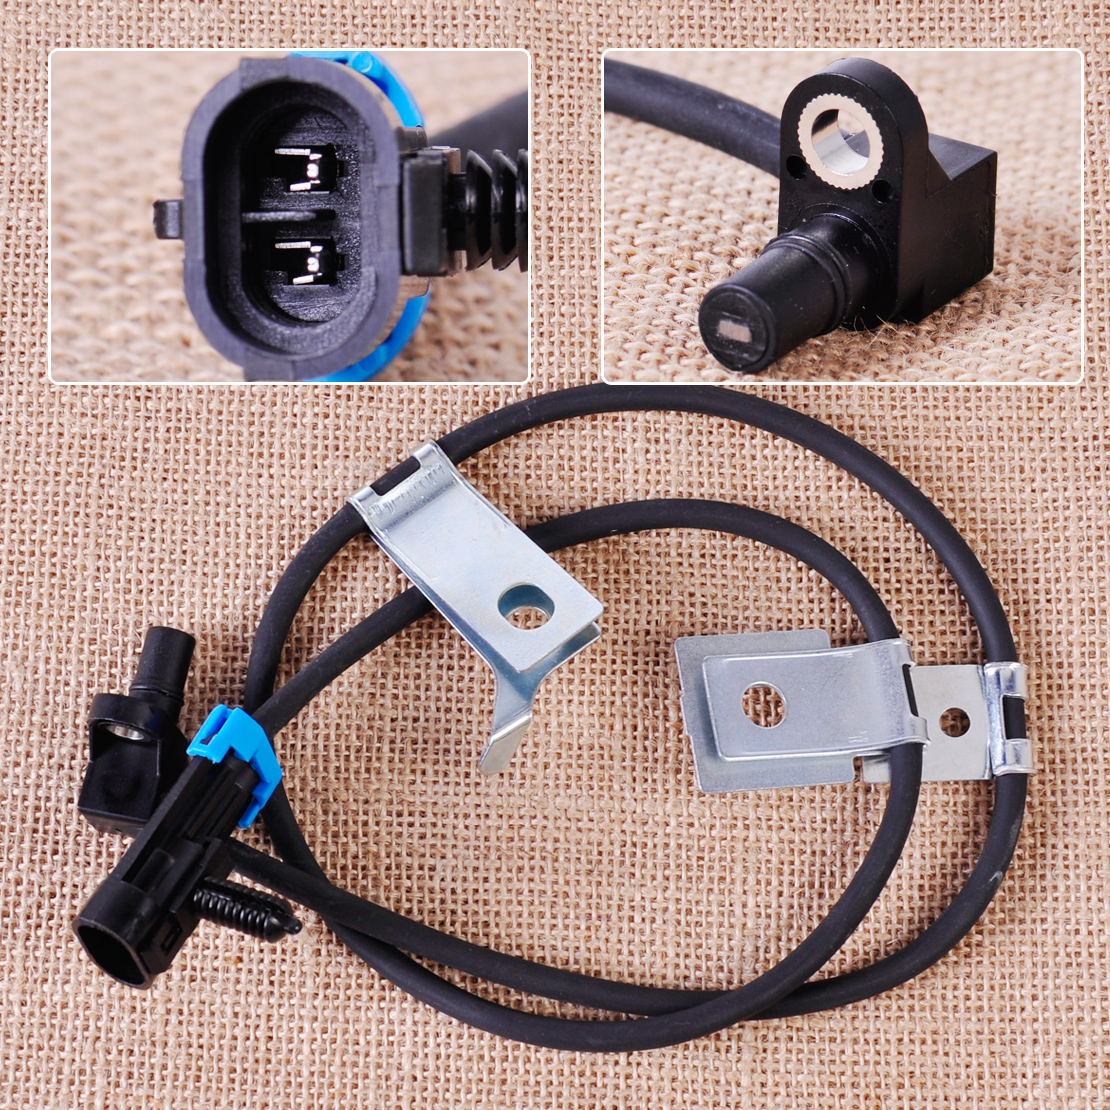 CITALL 15991986 Front Left or Right ABS Wheel Speed Sensor for Cadillac Escalade Chevrolet Chevy Express K1500 GMC C1500 Trucks